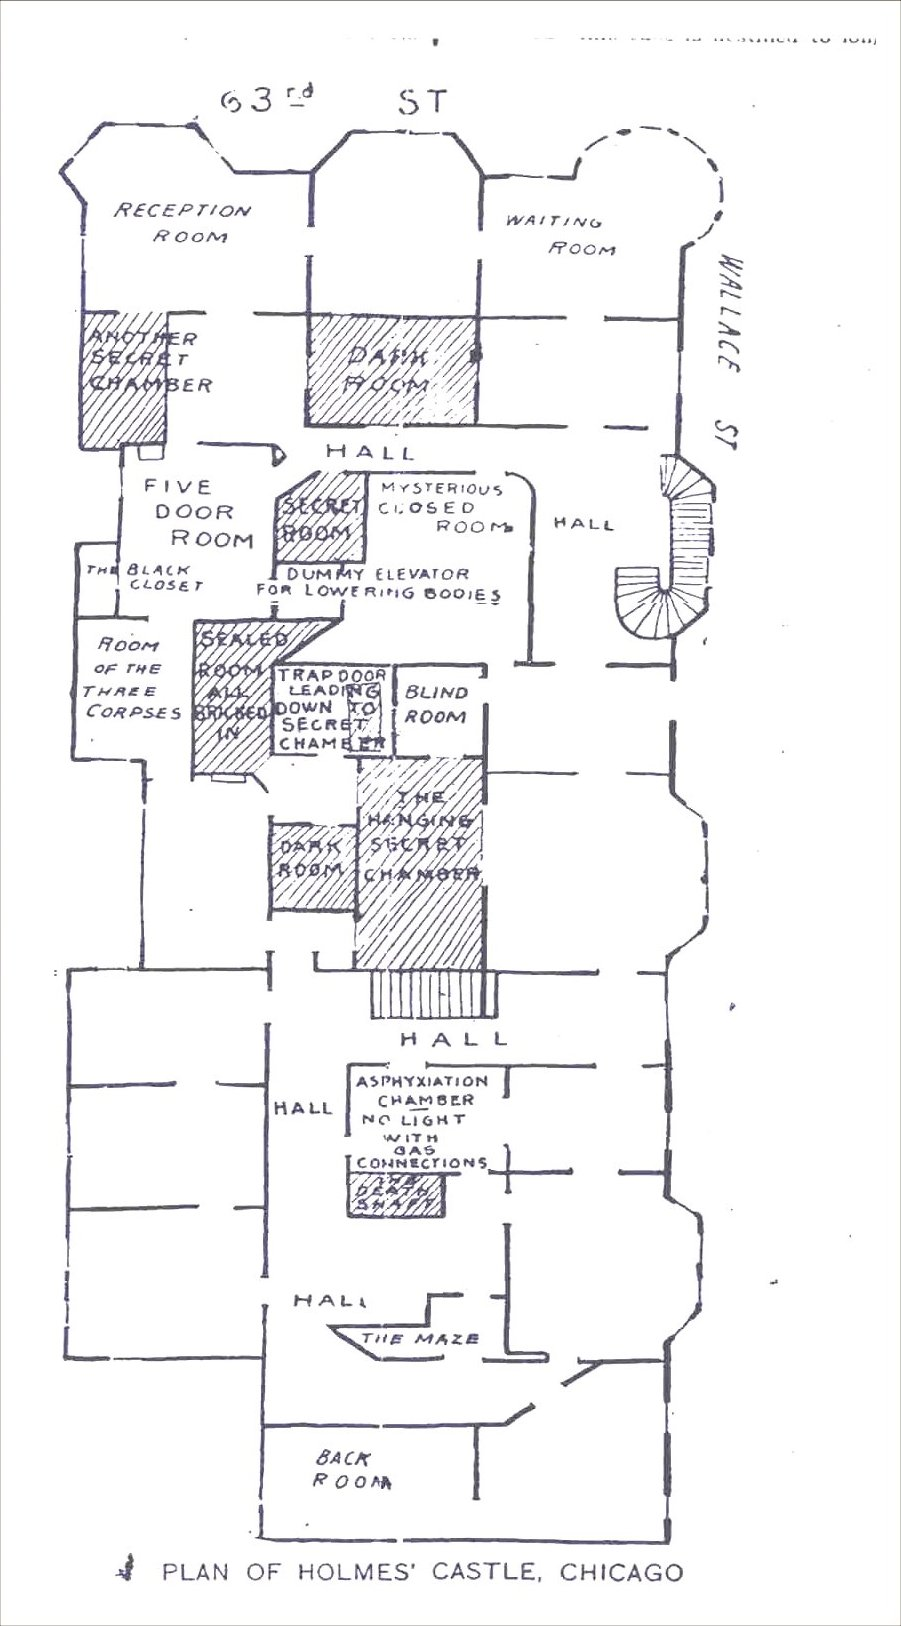 H_H_ Holmes Murder Castle Blueprints http://www.dmptv.co.uk/pro/hotel/2/index.htm